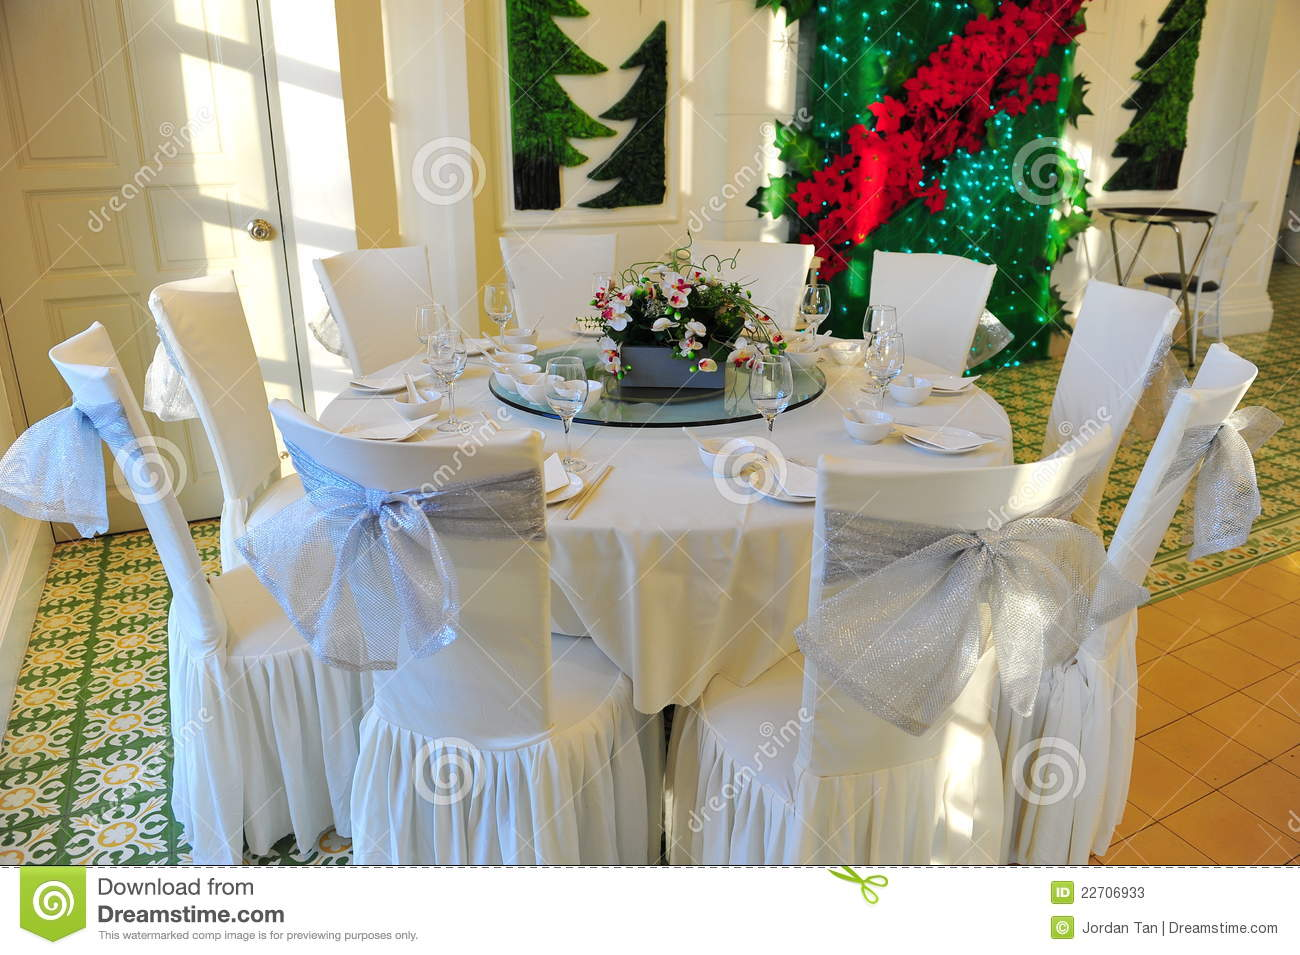 Fine Dining Table Stock Photos Image 22706933